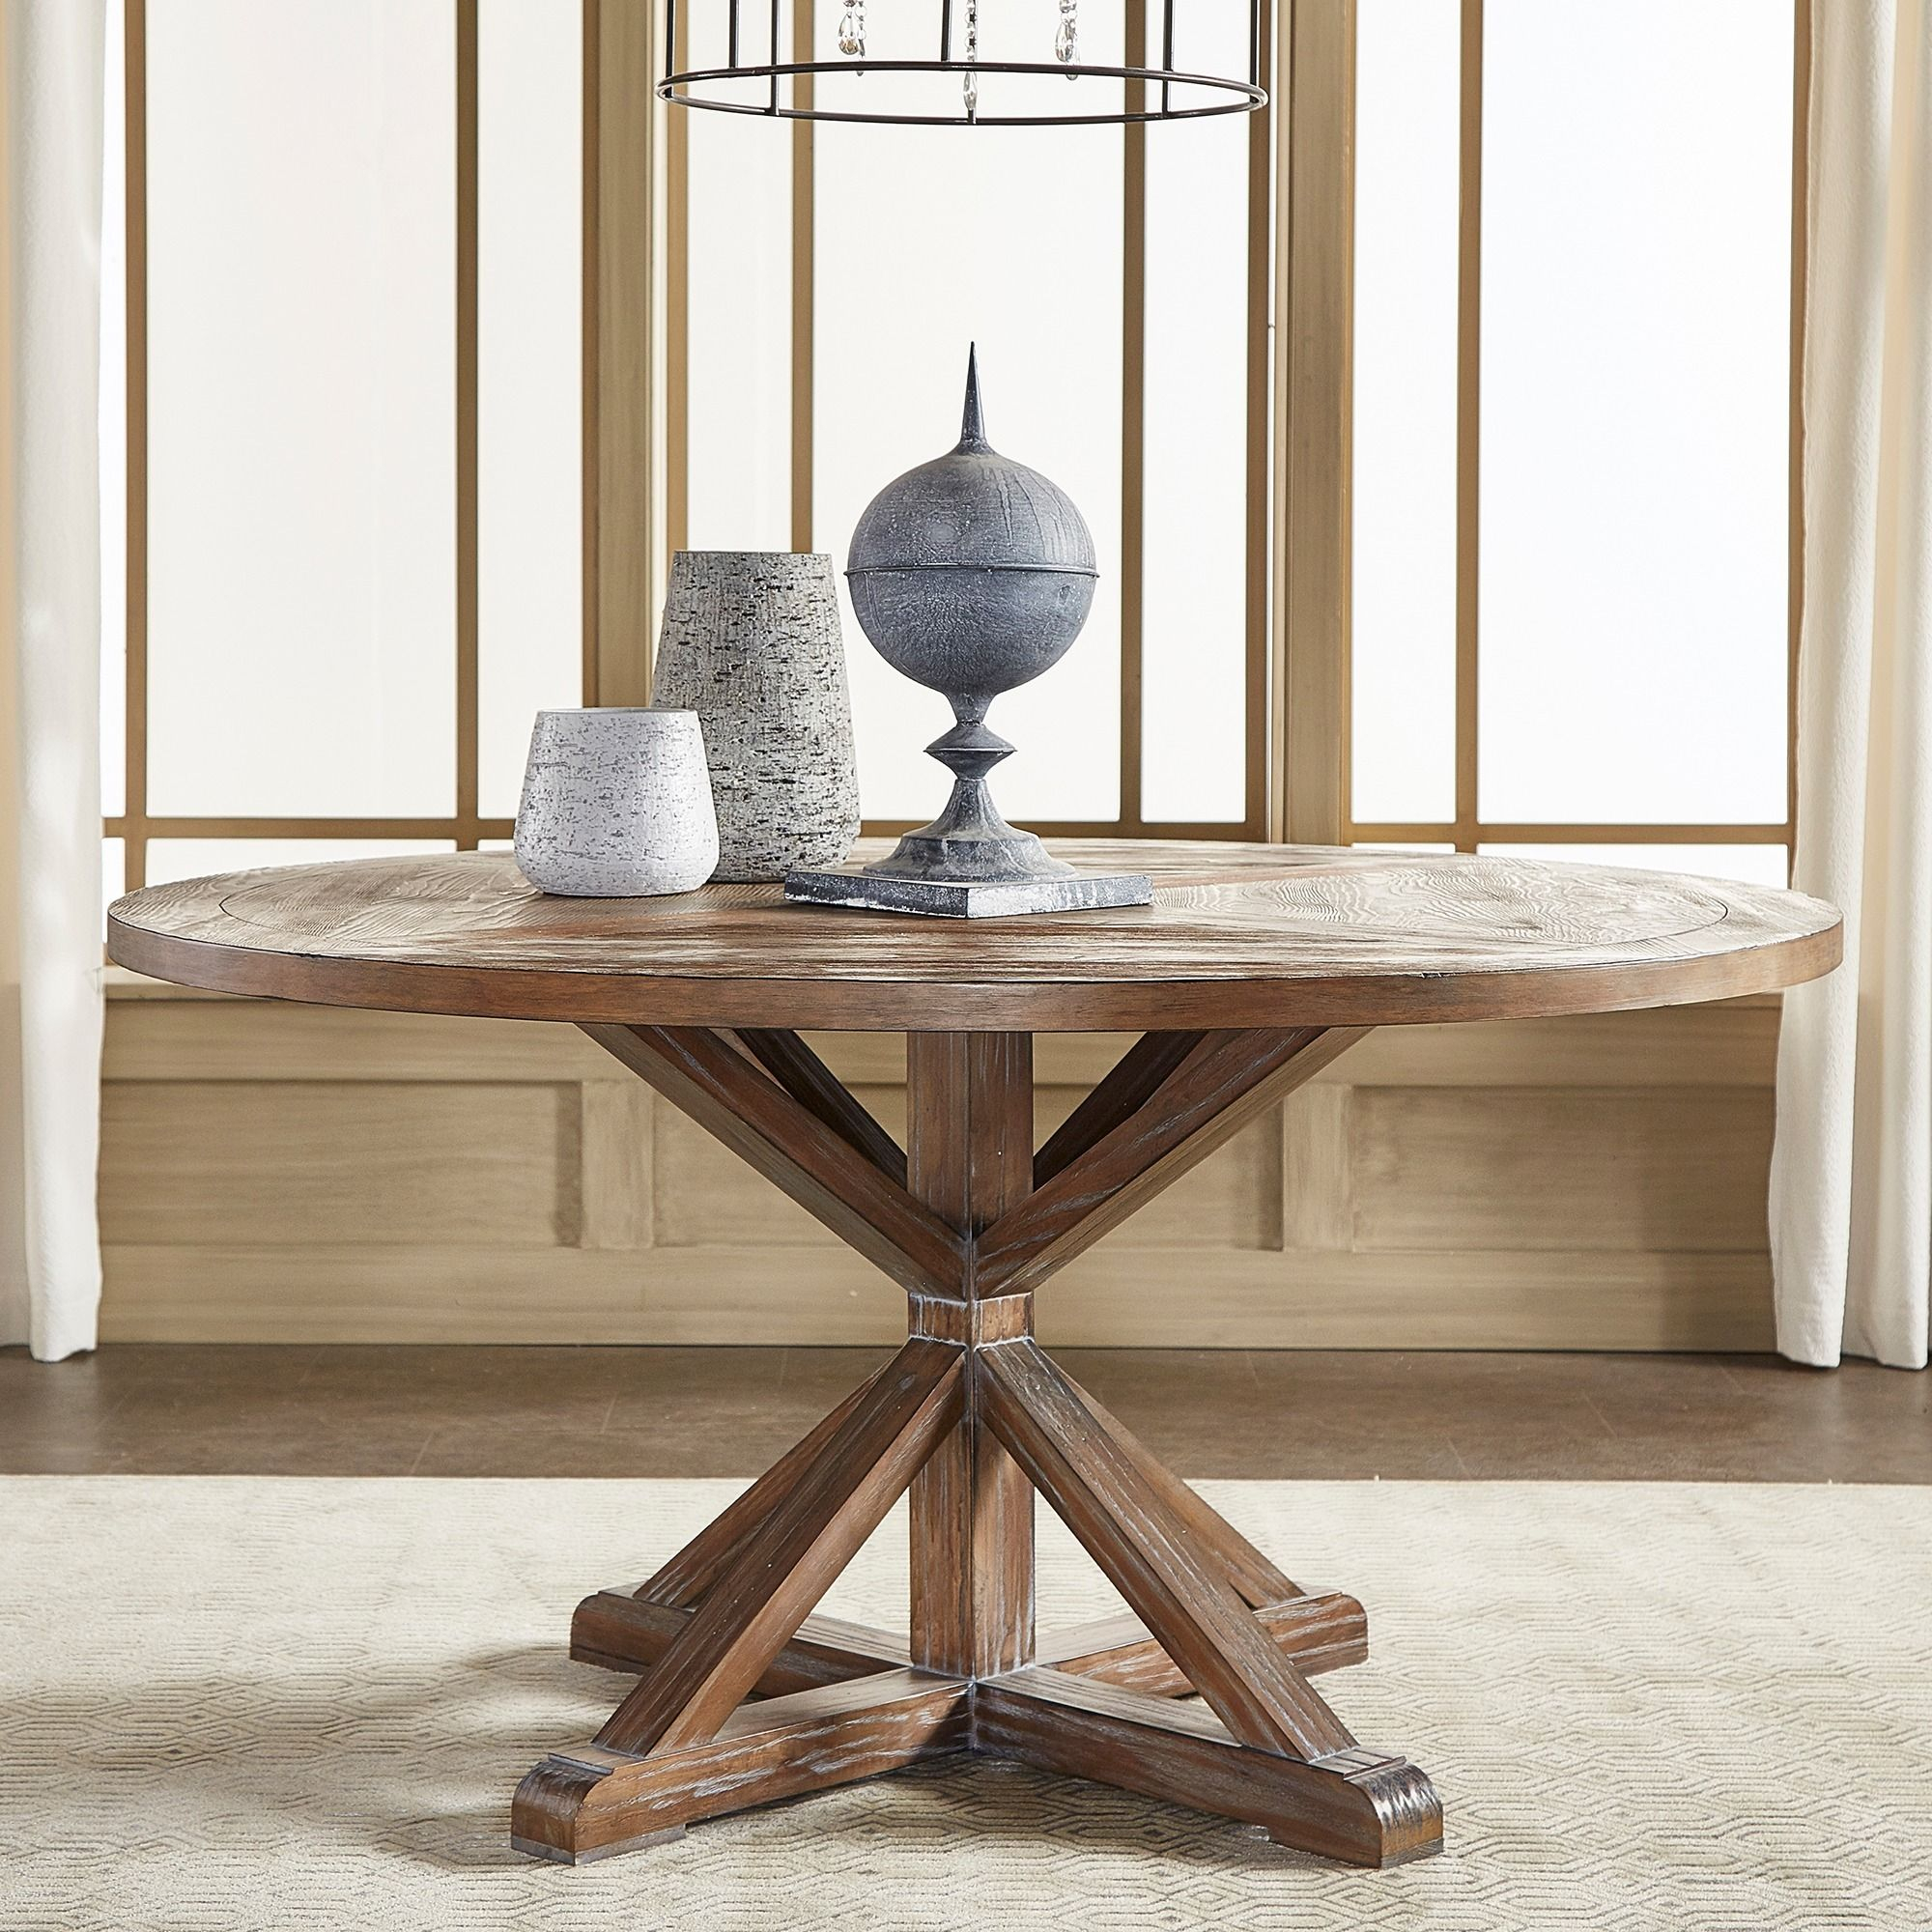 Benchwright Rustic X Base Round Pine Wood Dining Table Inside Most Recent Rustic Mahogany Benchwright Dining Tables (View 18 of 25)